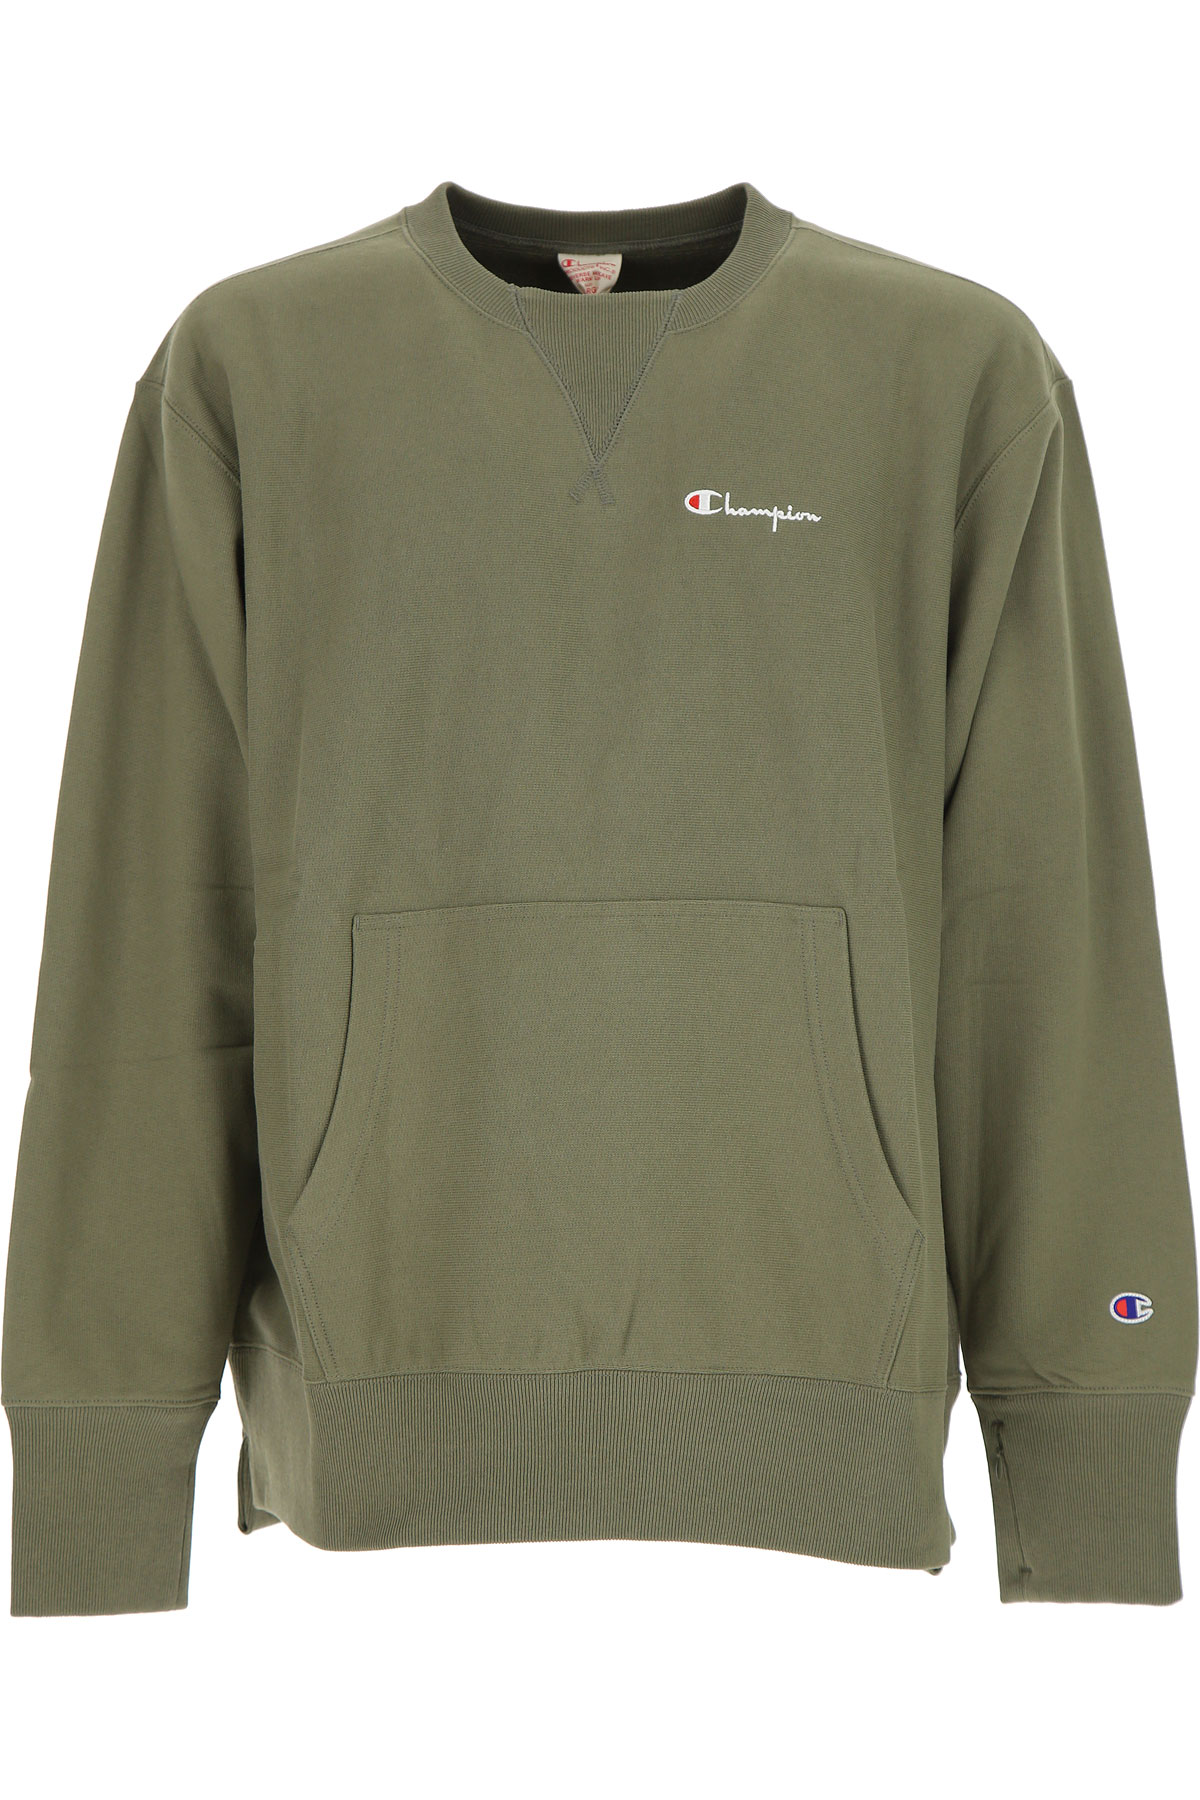 Champion Sweatshirt for Men On Sale, Olive, Cotton, 2017, L M S XL USA-454914